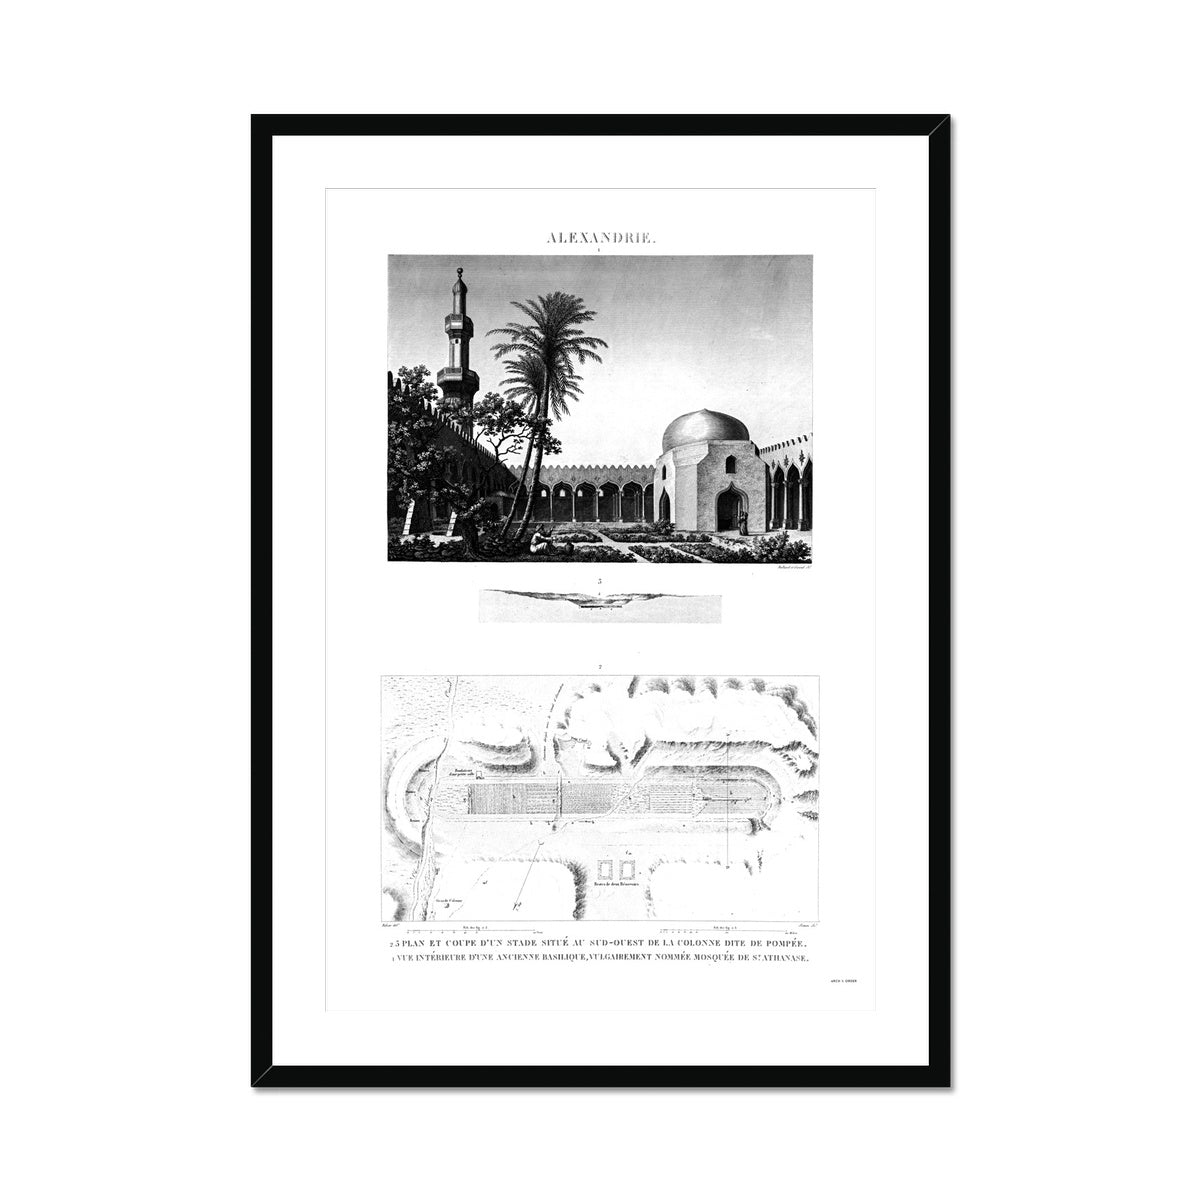 Mosque of St. Athanasius Courtyard - Alexandria Egypt -  Framed & Mounted Print